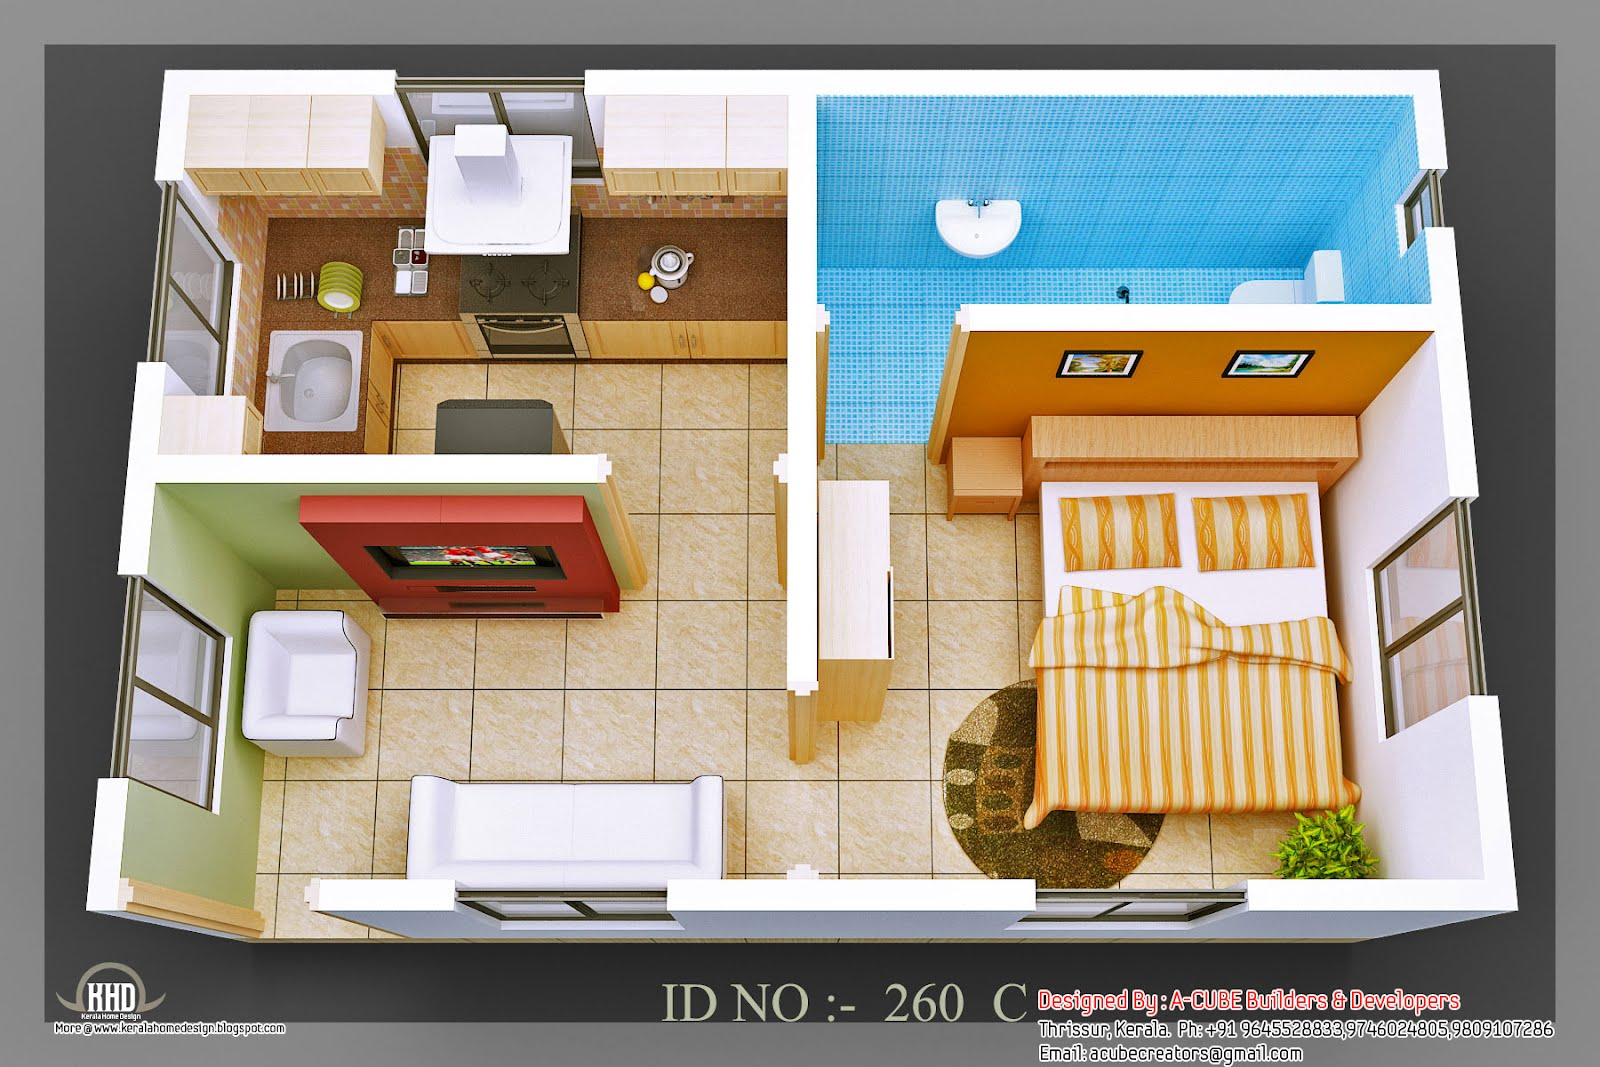 3d isometric views of small house plans a taste in heaven Plan your house 3d